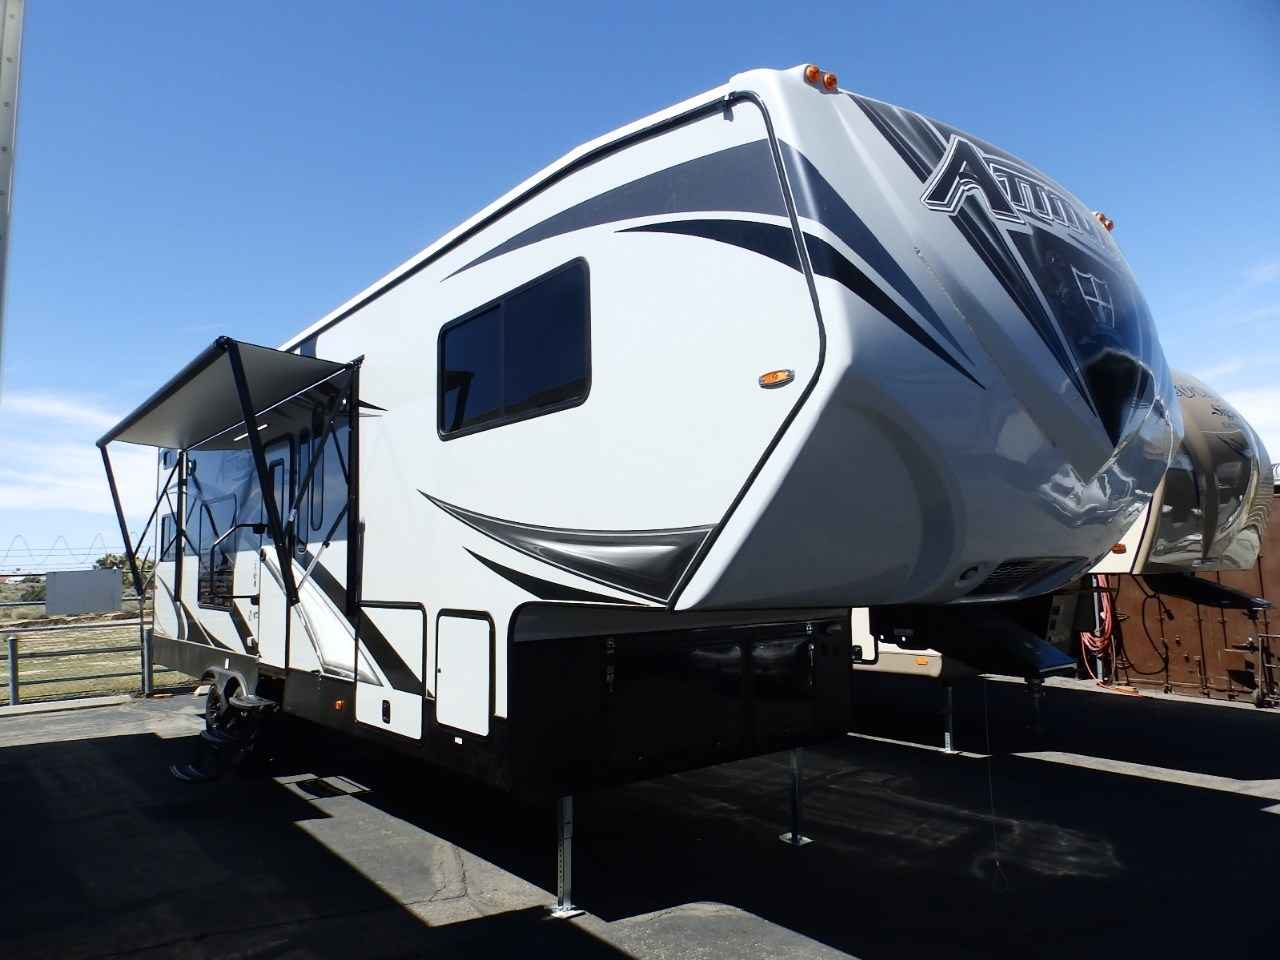 vehicle 2017 New Eclipse Recreational Vehicles ATTITUDE 31CRSG 2 SLIDES 5500 ONAN GEN Fifth Wheel in California CA 117669104 56f4634d2f06824602b4c578 2017 new eclipse recreational vehicles attitude 31crsg, 2 slides Typical RV Wiring Diagram at panicattacktreatment.co